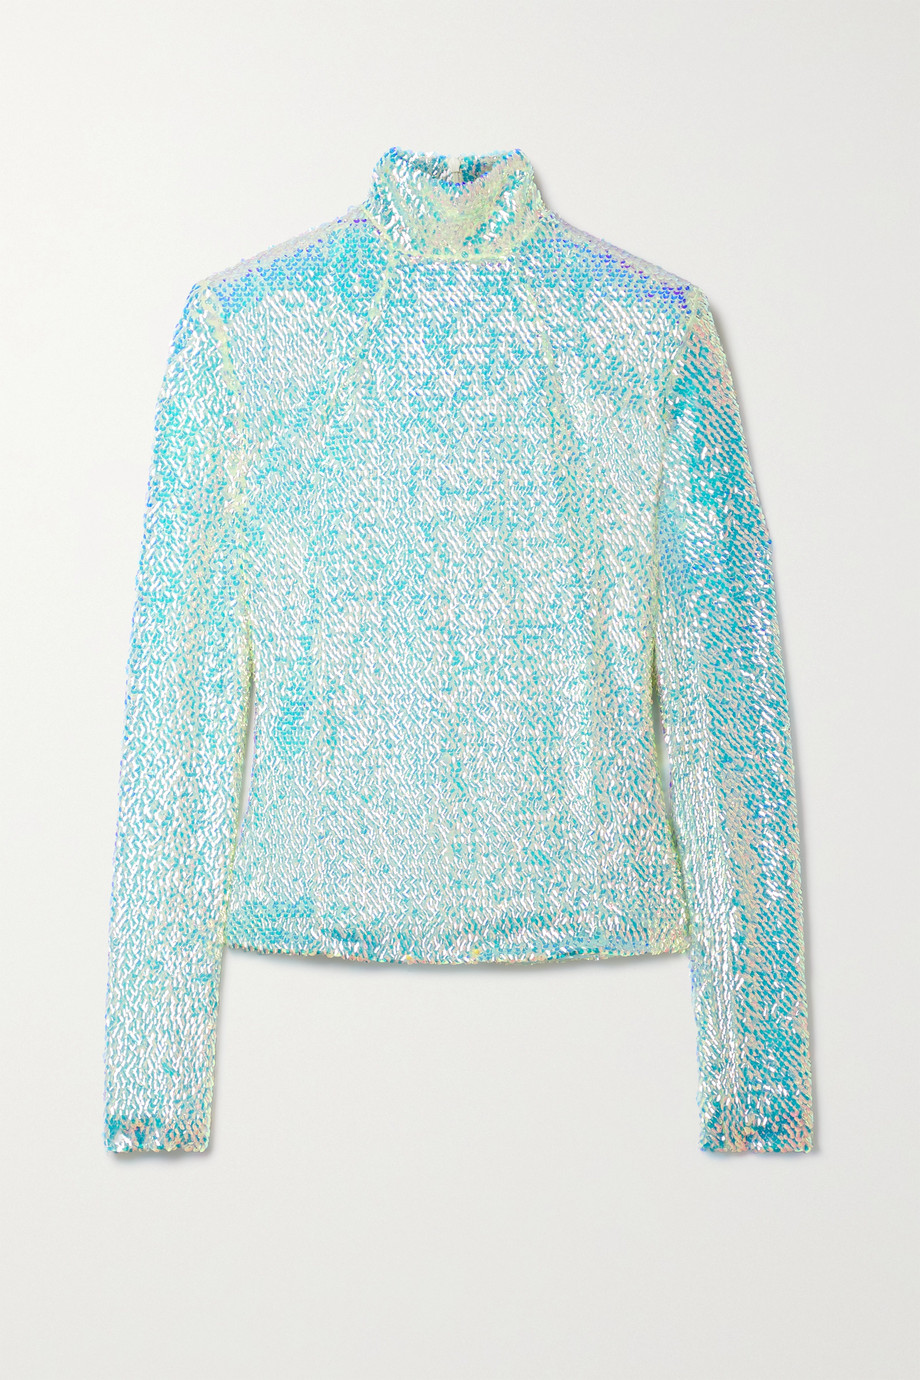 A.W.A.K.E. MODE Sequined tulle turtleneck top